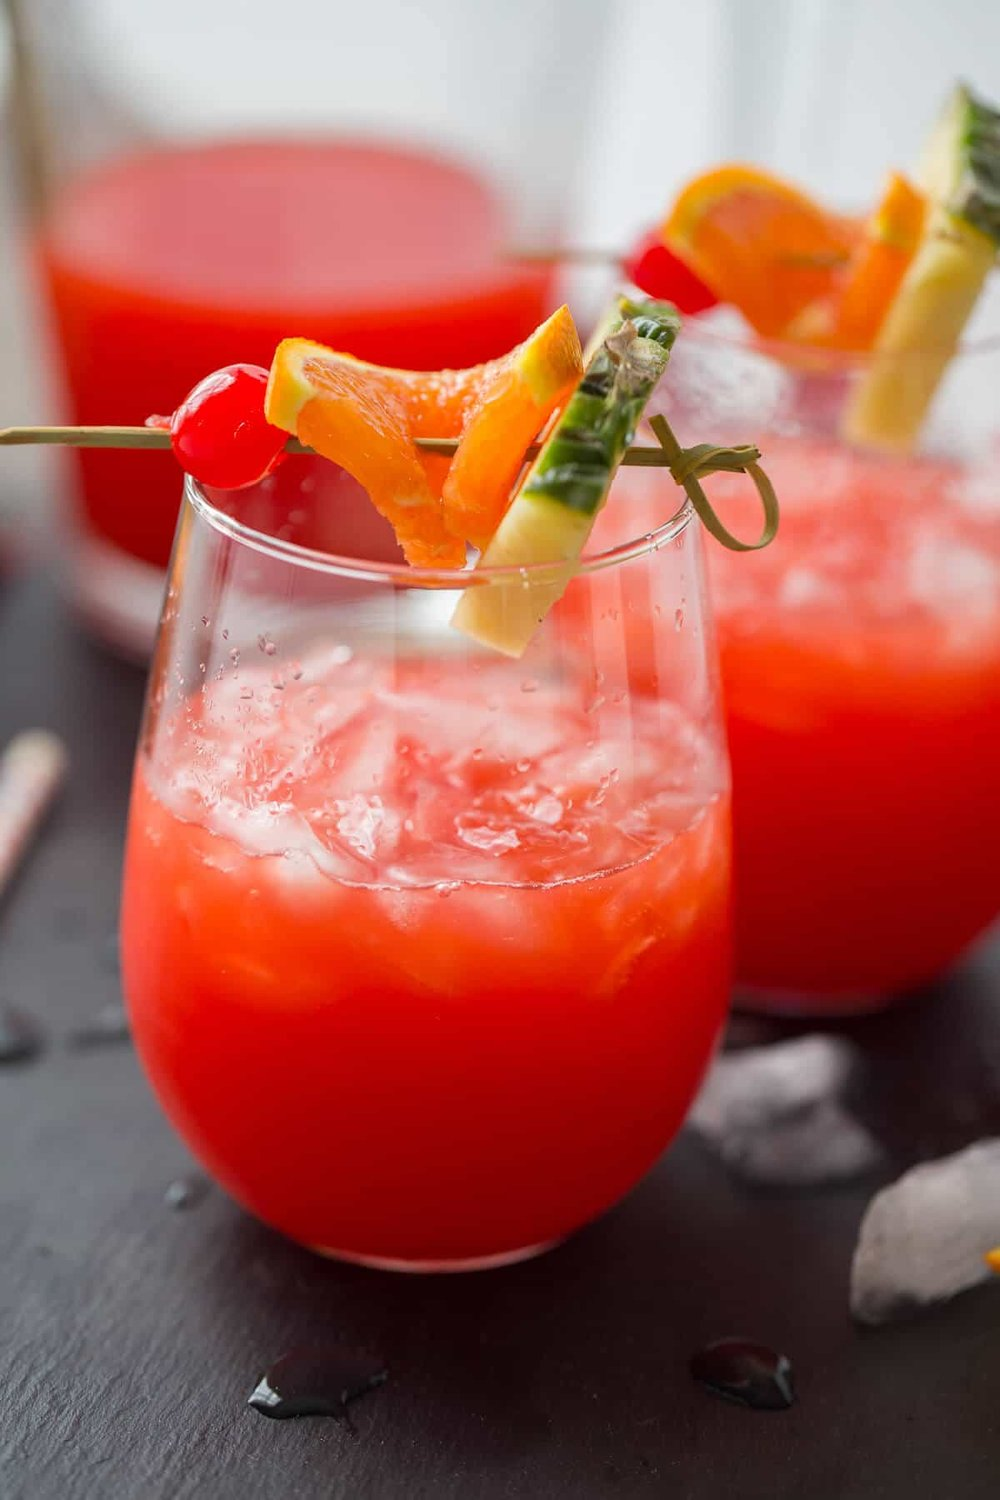 Rum punch Recipe -  1 cup of orange juice1 cup of pineapple juice1/4 cup lime juice1/4 cup rum1/4 cup dark rum1/2 cup of grenadine In a pitcher, combine the juices, the rum, and the grenadine.  Stir. Pour into ice-filled glasses and serve with an orange slice and maraschino cherries. Enjoy responsibly!